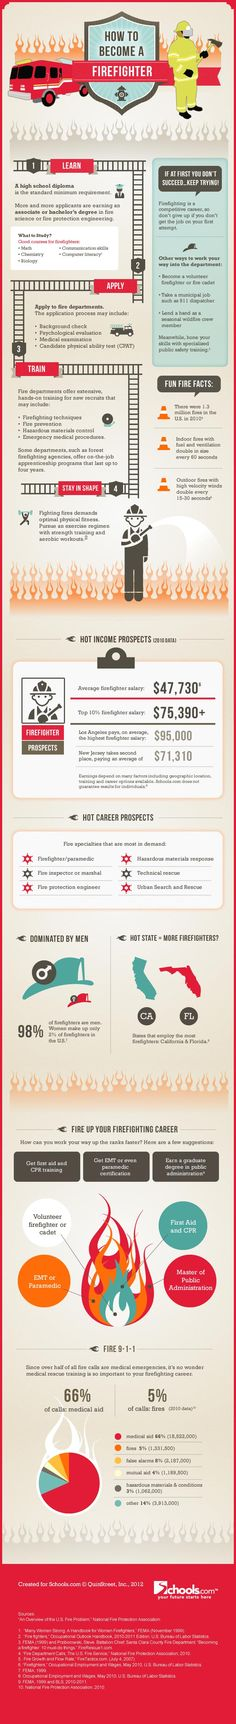 How to become a firefighter infographic.